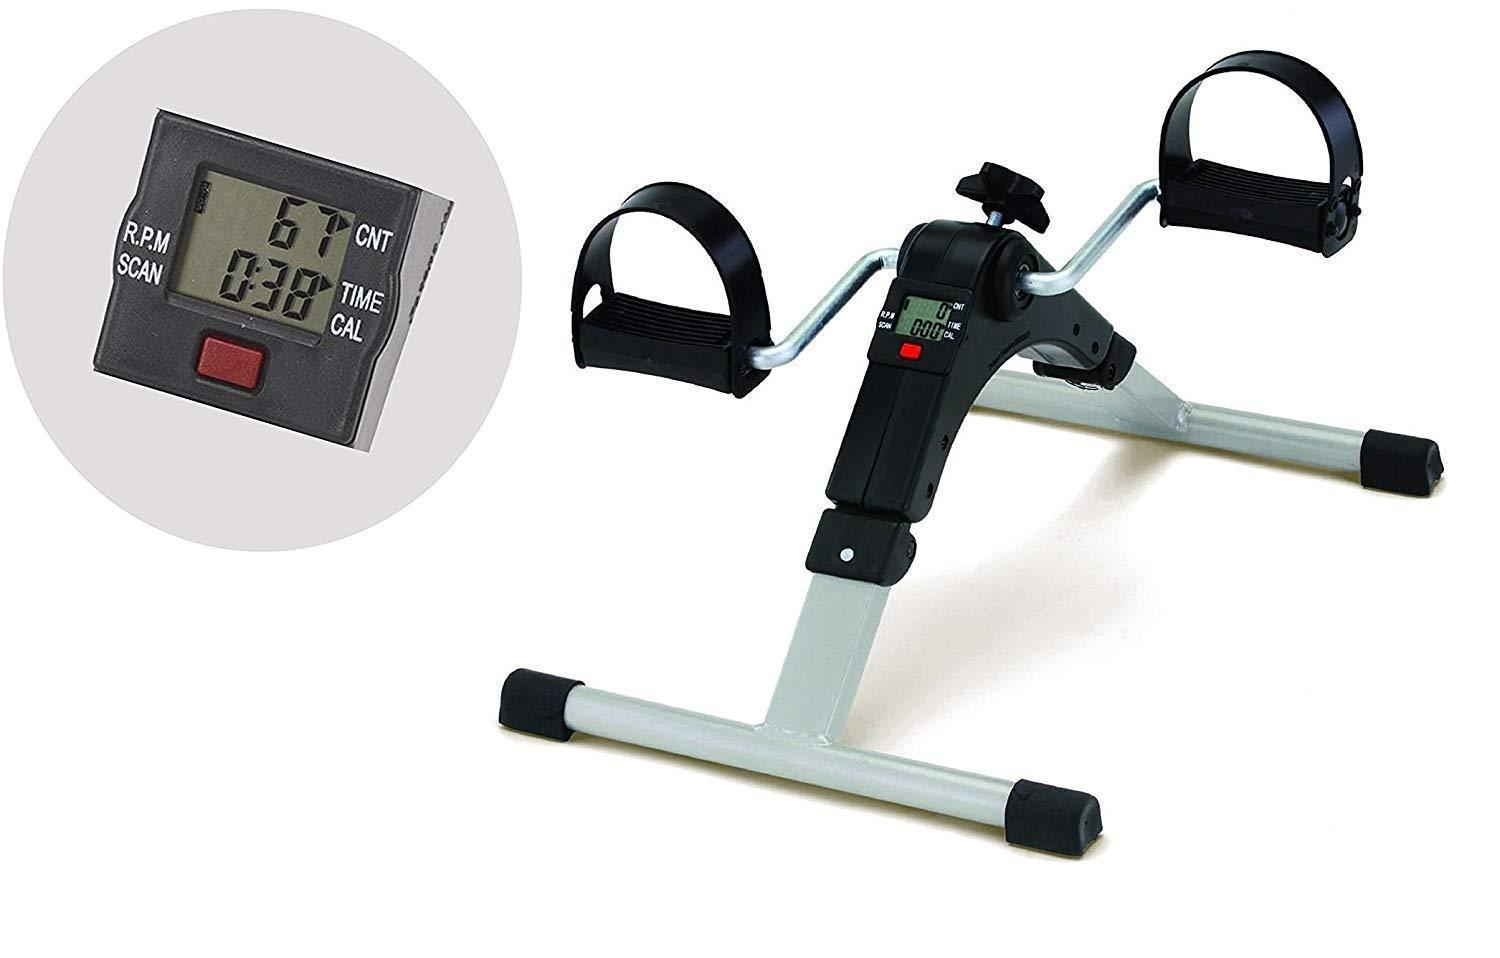 Mini Pedal Exercise Cycle / Fitness Bike